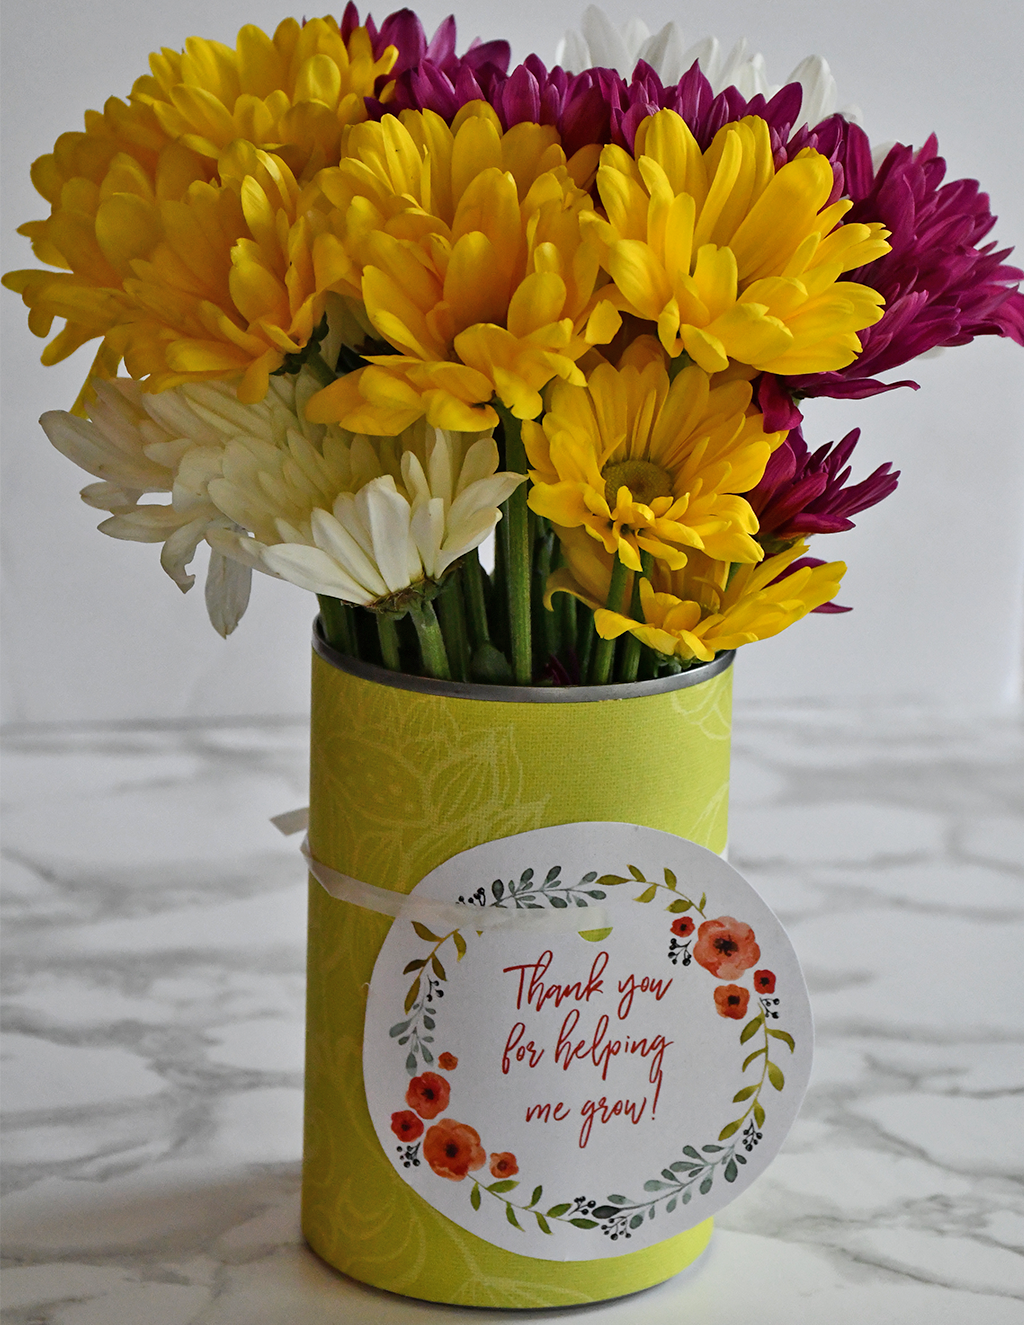 DIY Tin Can Vase | Teacher Appreciation Printable Tag | Teacher Appreciation Gift Ideas | Gifts for Teachers | Gifts for Teachers End of Year | DIY Teacher Appreciation Gifts #DIYteachergift #teacherappreciationgifts